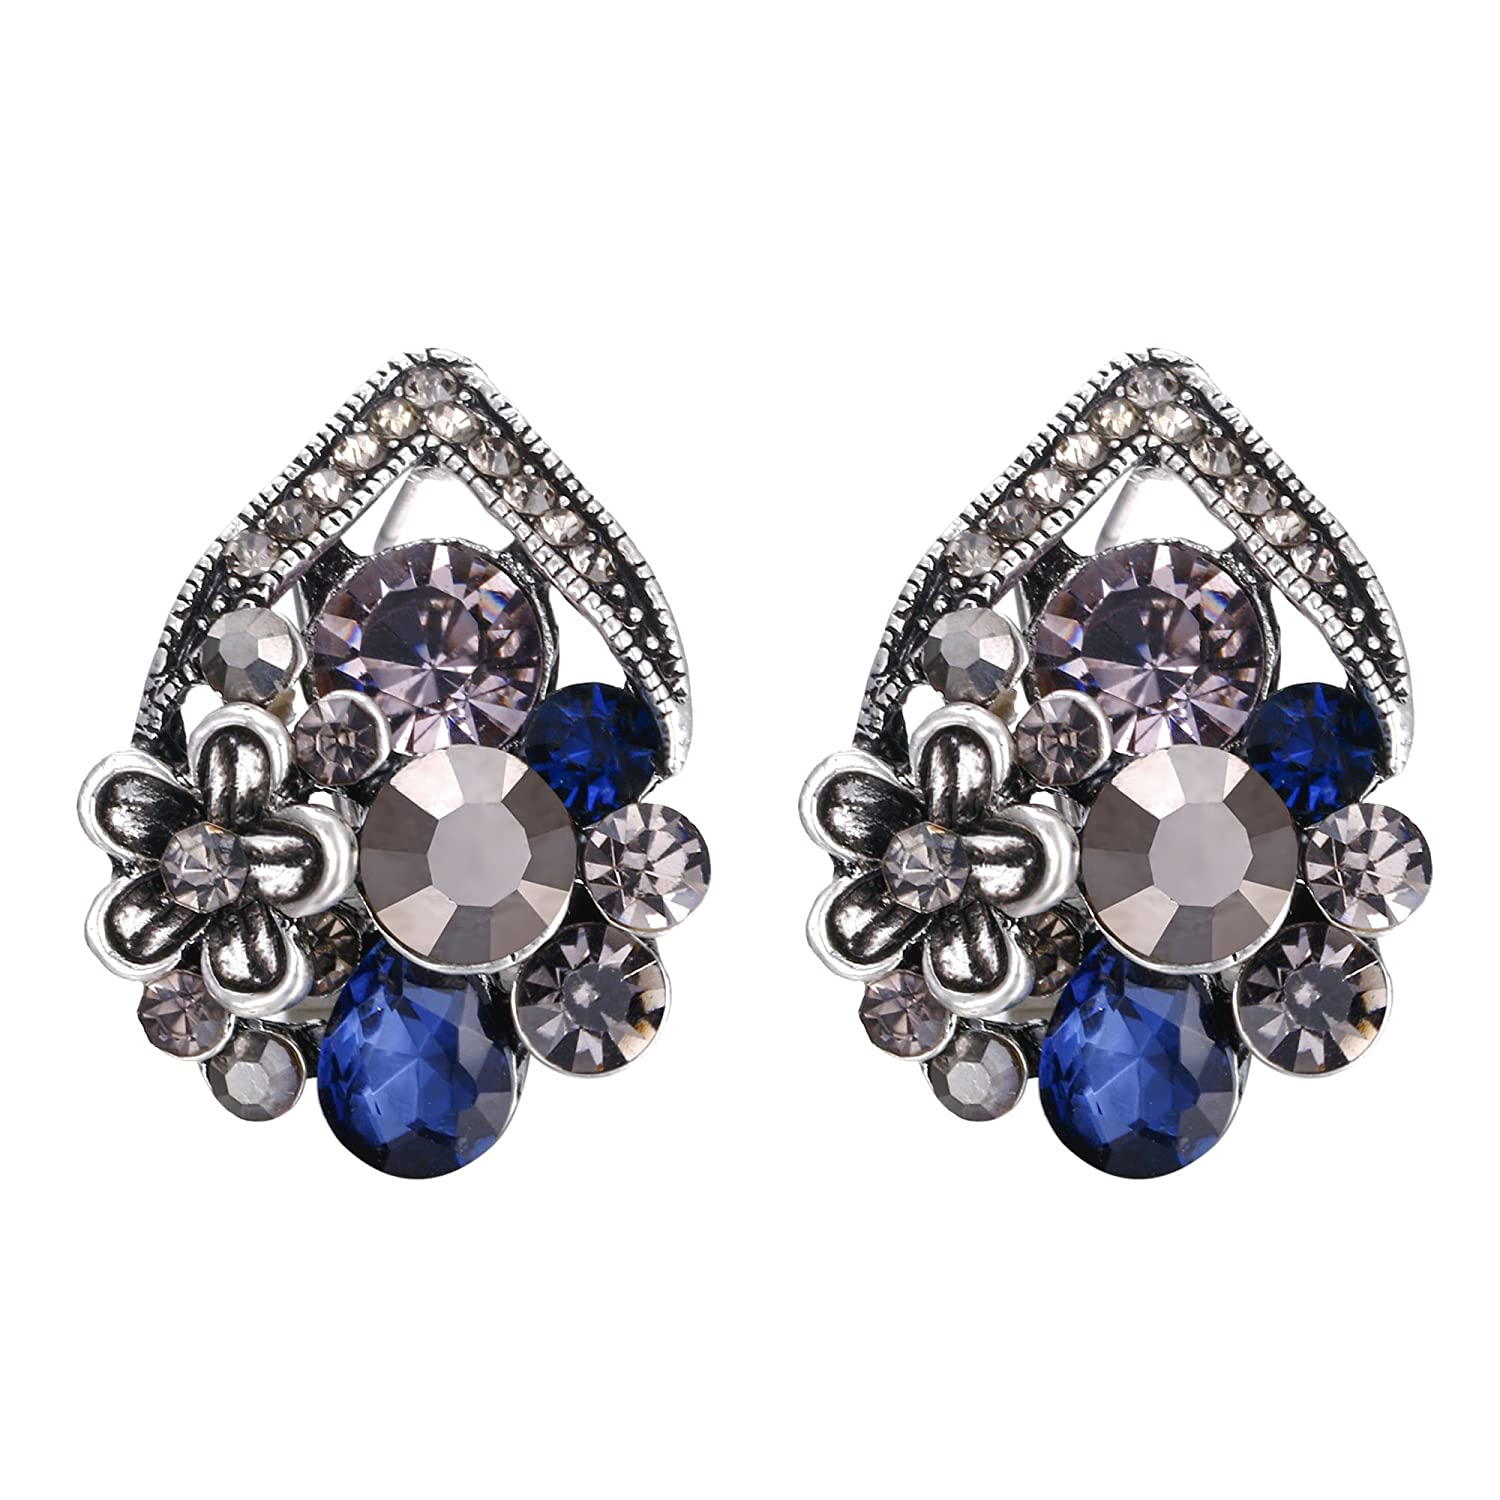 EVER FAITH Crystal Vintage Inspired Flower Leaf Stud Earrings for Prom Ball Bride